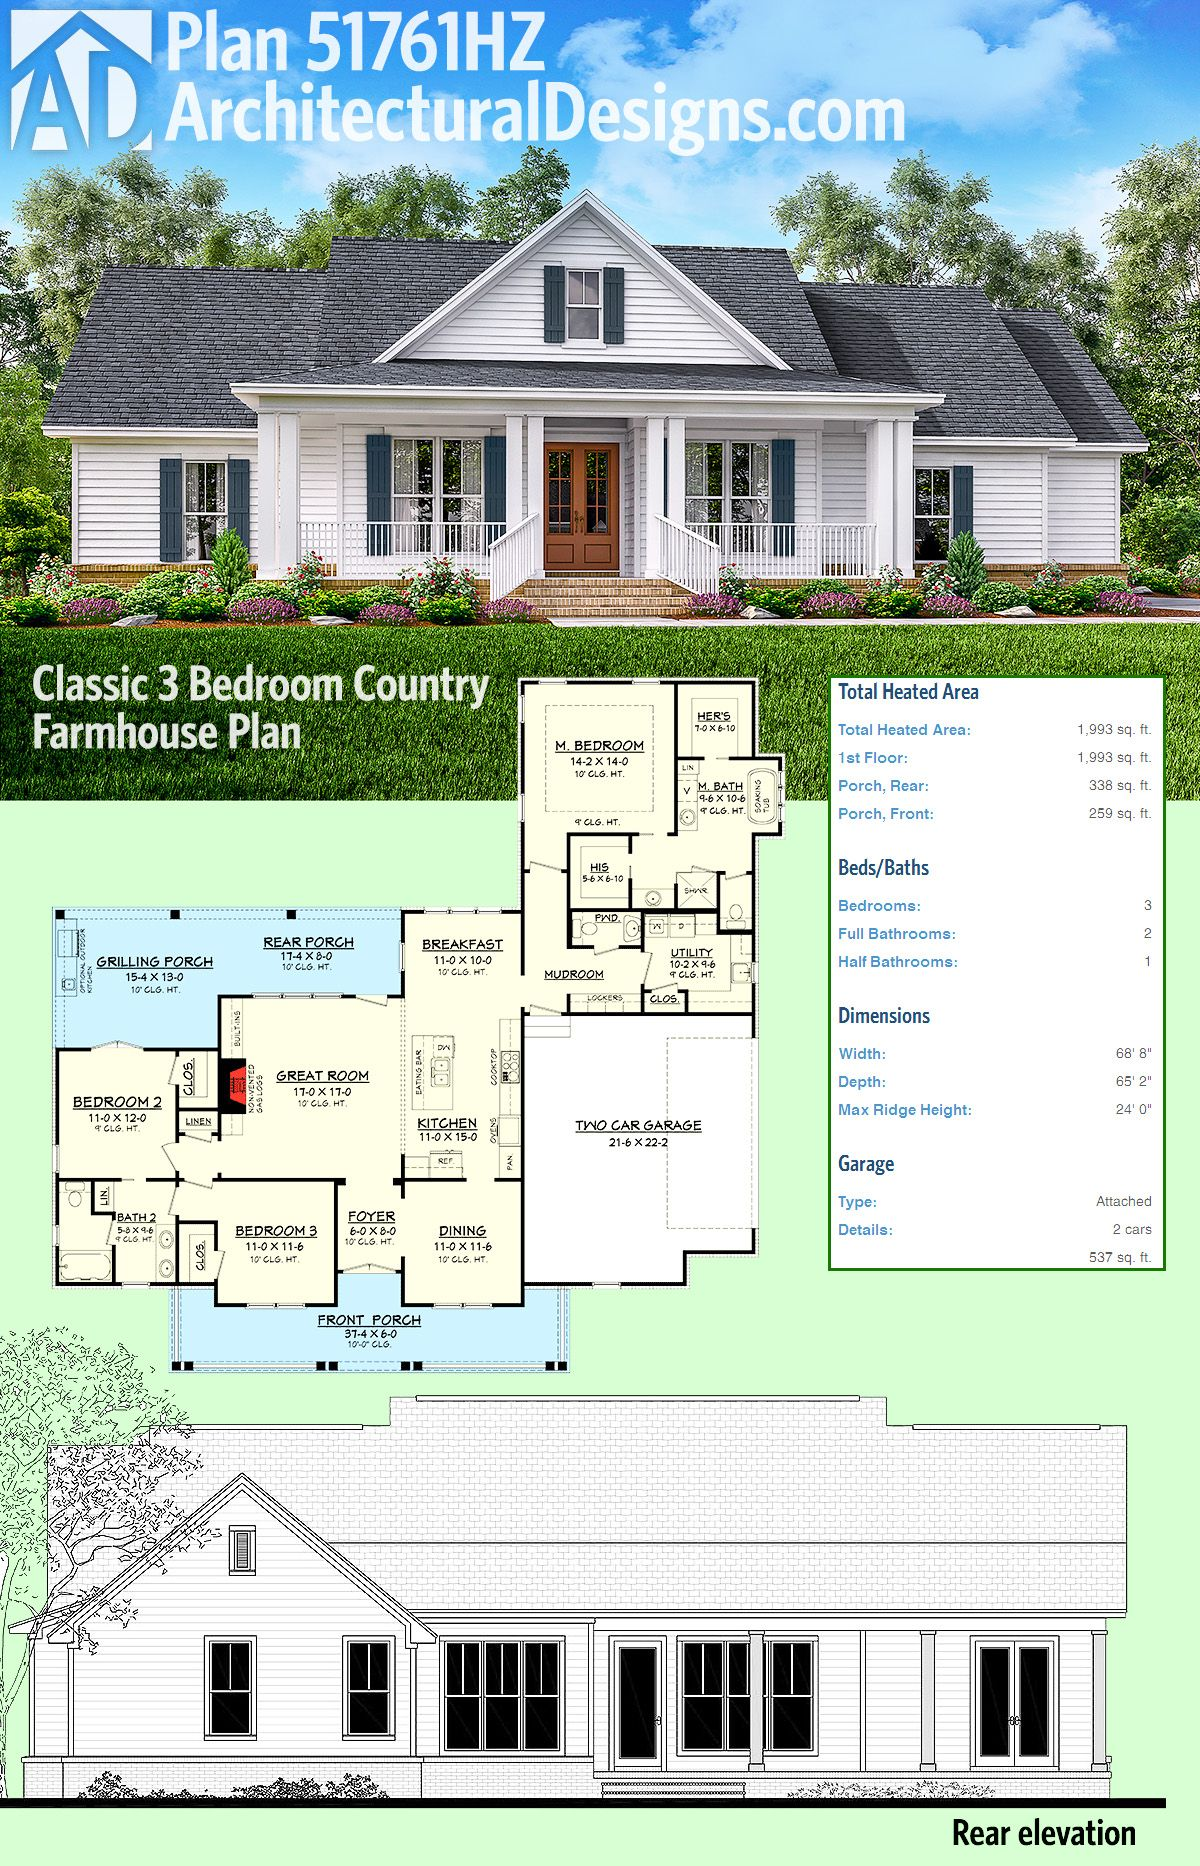 Awesome Introducing Architectural Designs House Plan 51761HZ (Classic 3 Bedroom  Country Farmhouse Plan). It